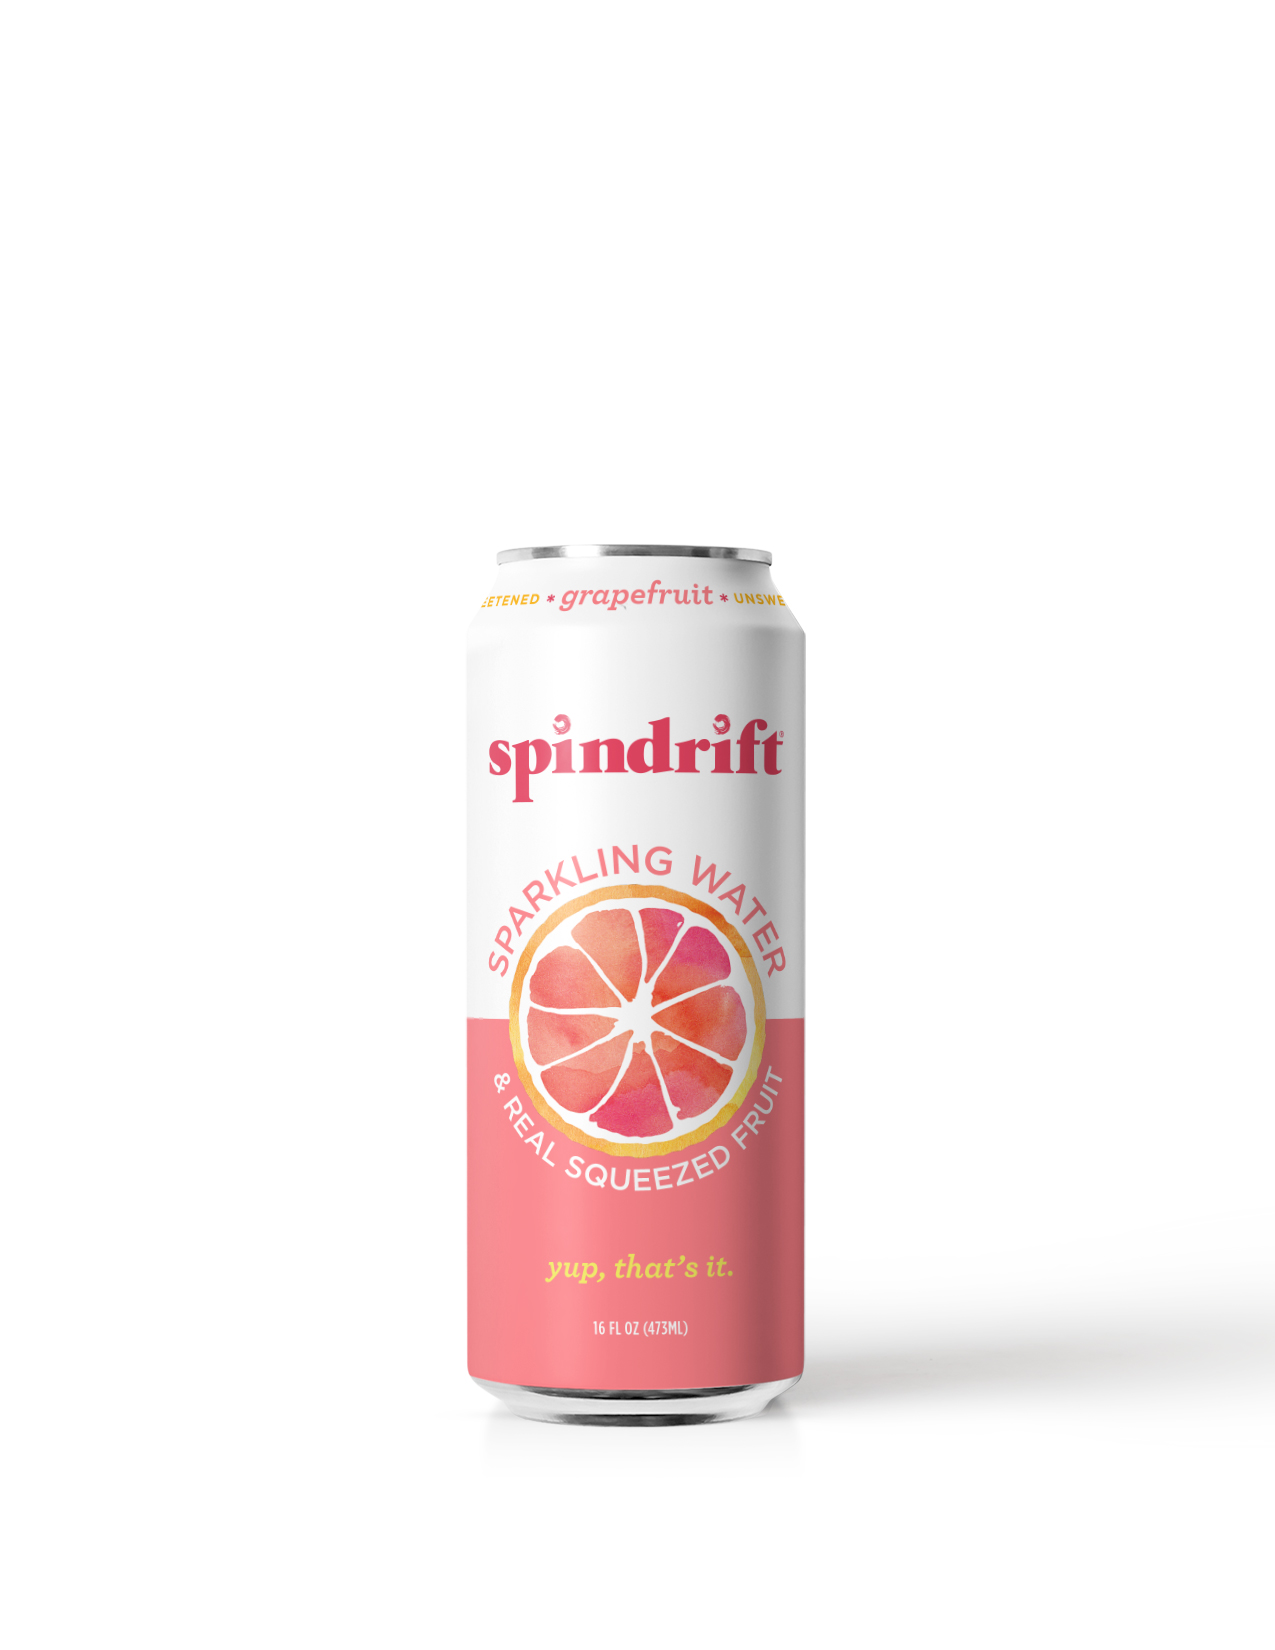 Spindrift Cans